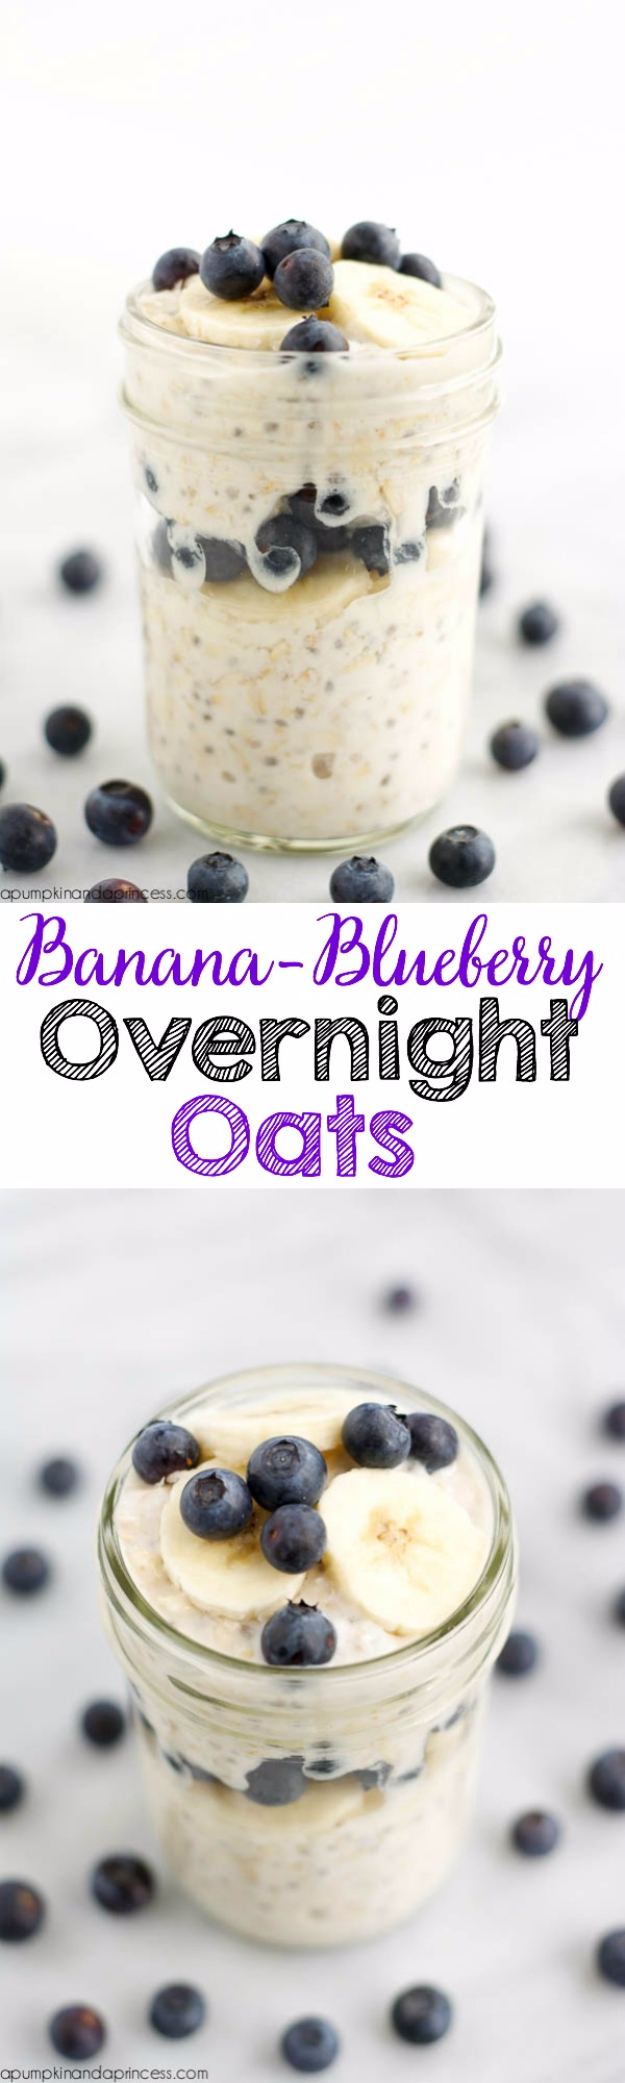 Best Recipes in A Jar - Banana Blueberry Overnight Oats In A Jar - DIY Mason Jar Gifts, Cookie Recipes and Desserts, Canning Ideas, Overnight Oatmeal, How To Make Mason Jar Salad, Healthy Recipes and Printable Labels